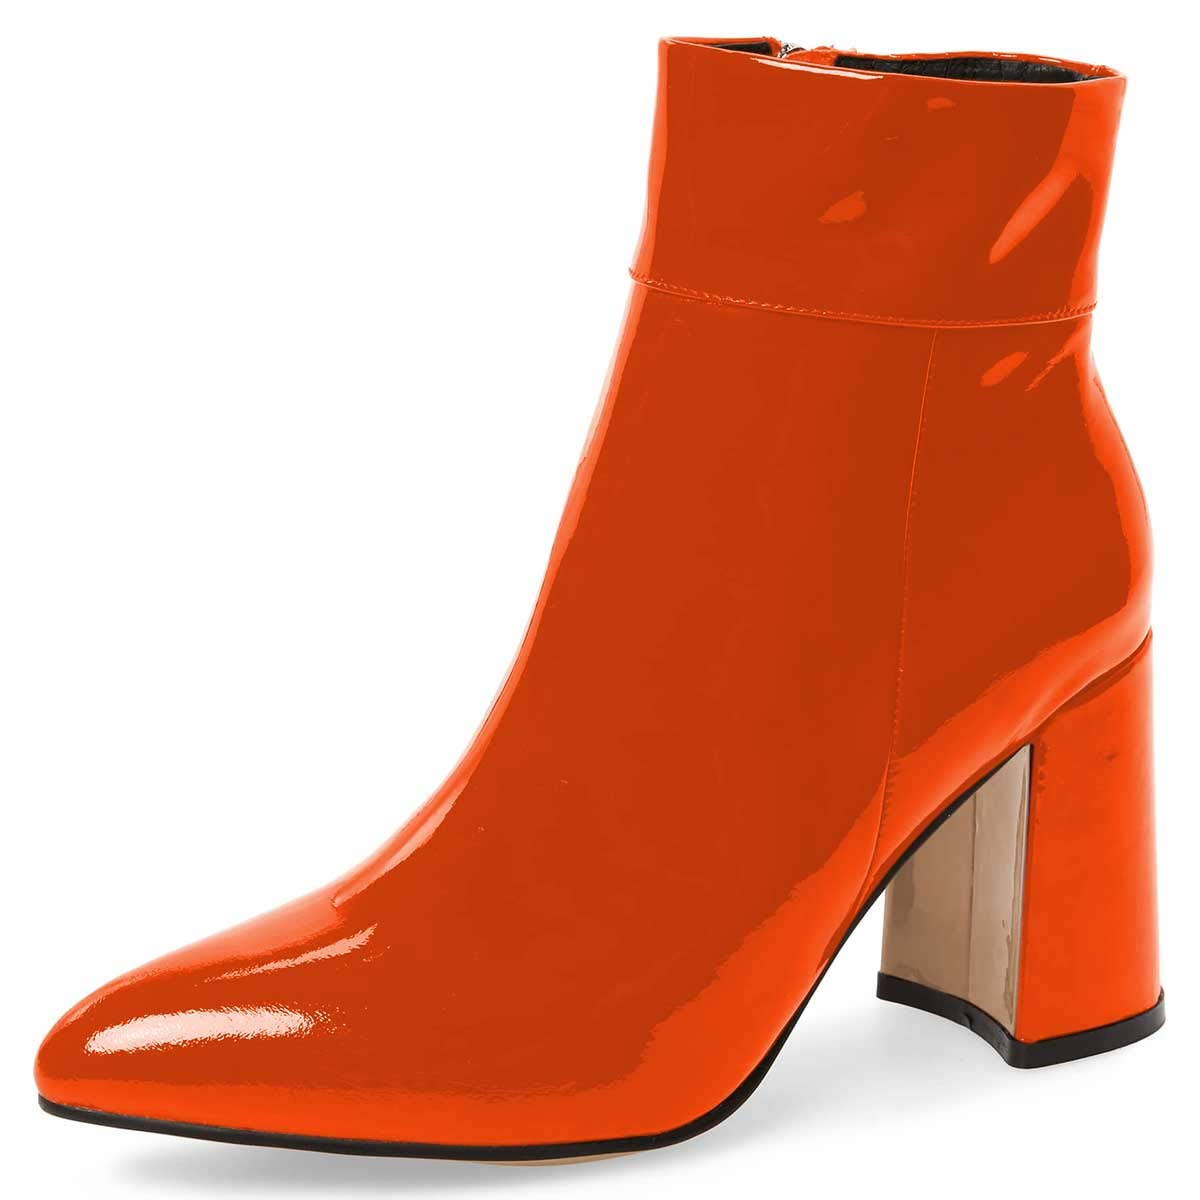 orange FSJ Women Pointed Toe Block High Heels Ankle Boots Glossy Patent Leather Party Dress Booties Size 4-15 US